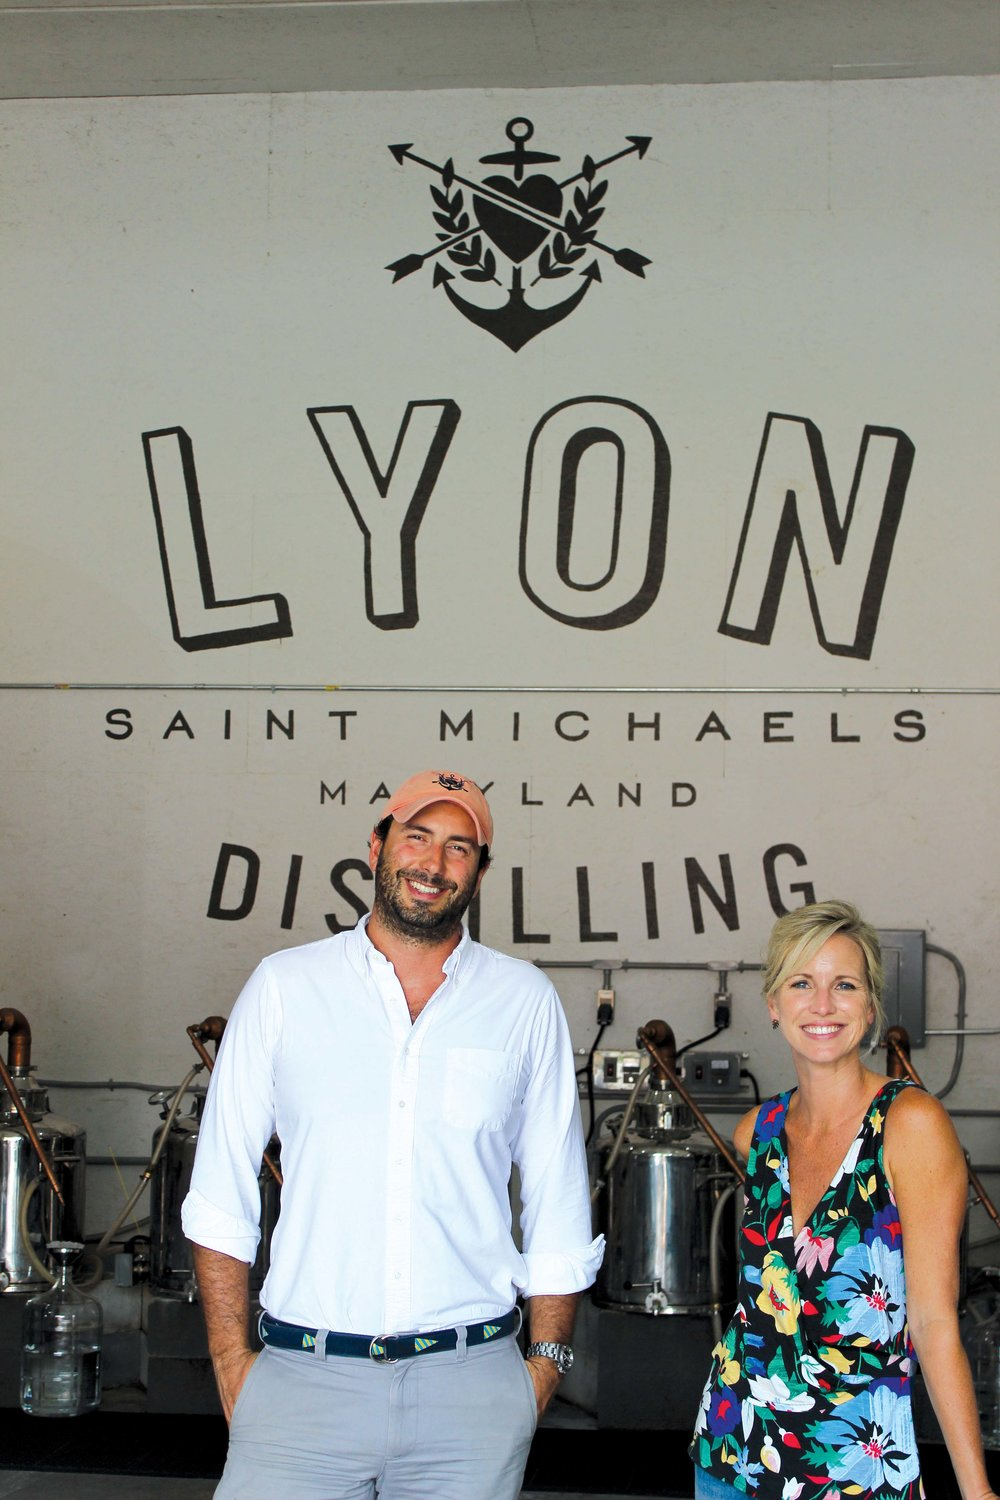 Lyon Distilling Company founders Ben Lyon and Jaime Windon. Photo by Laura Boycourt.